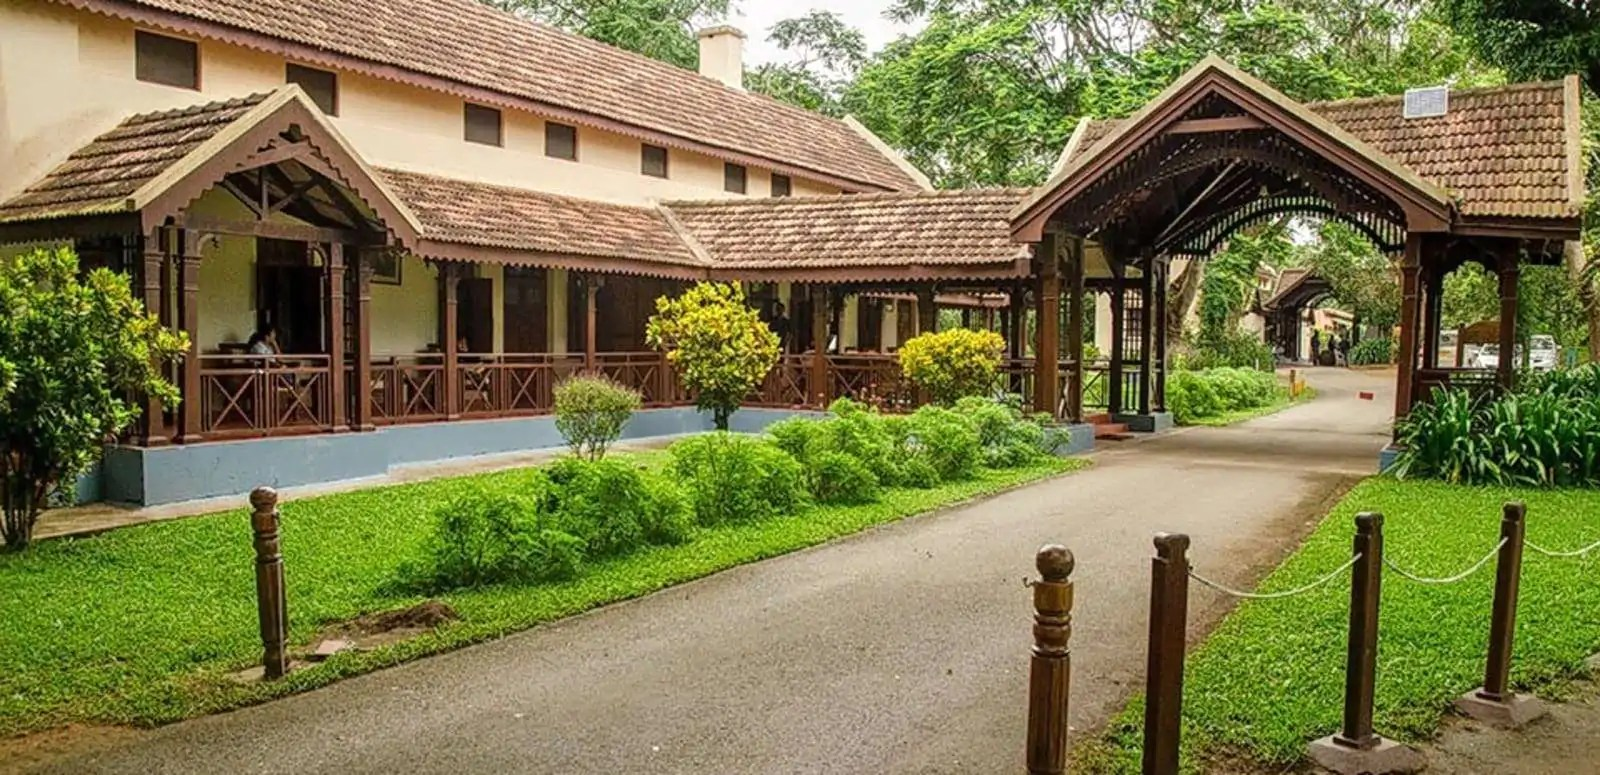 Here are the various reasons to stay in a resort